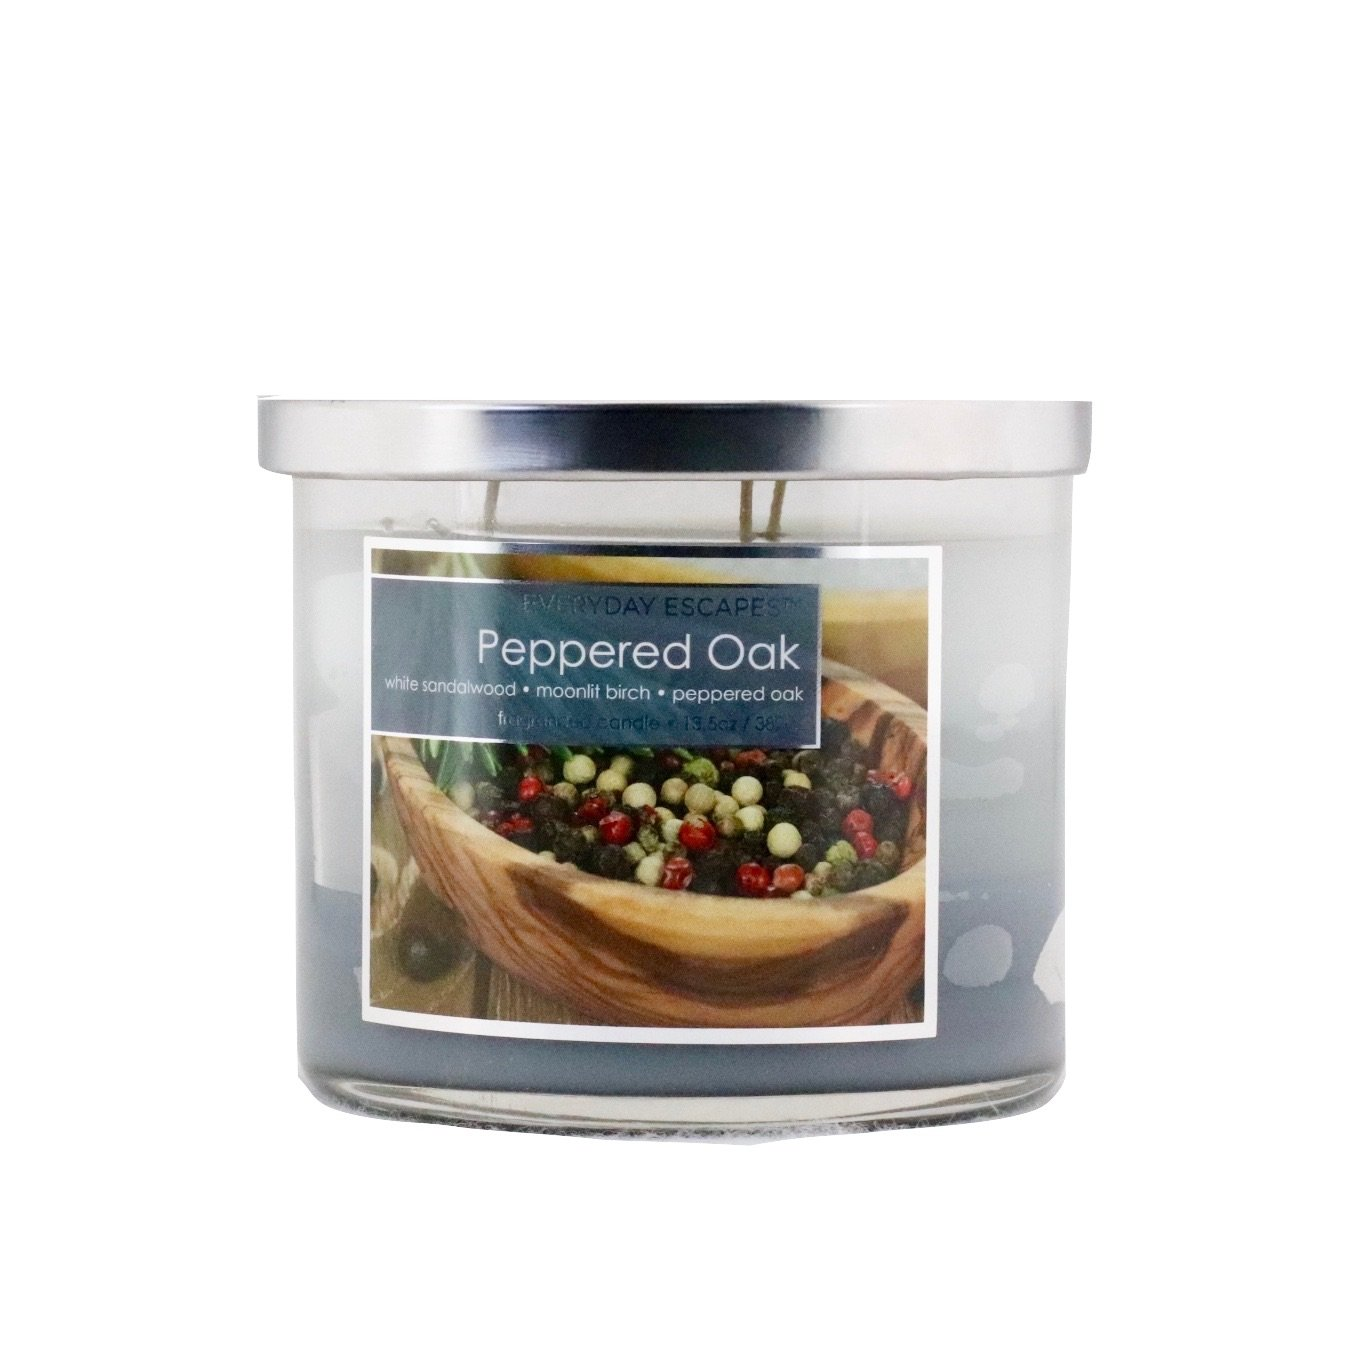 Everyday Escapes by MVP Group Scented Tri-layer Triple Wicks Candle 13.5 oz -Peppered Oak White Sandalwood/Moonlit Birch/Peppered Oak